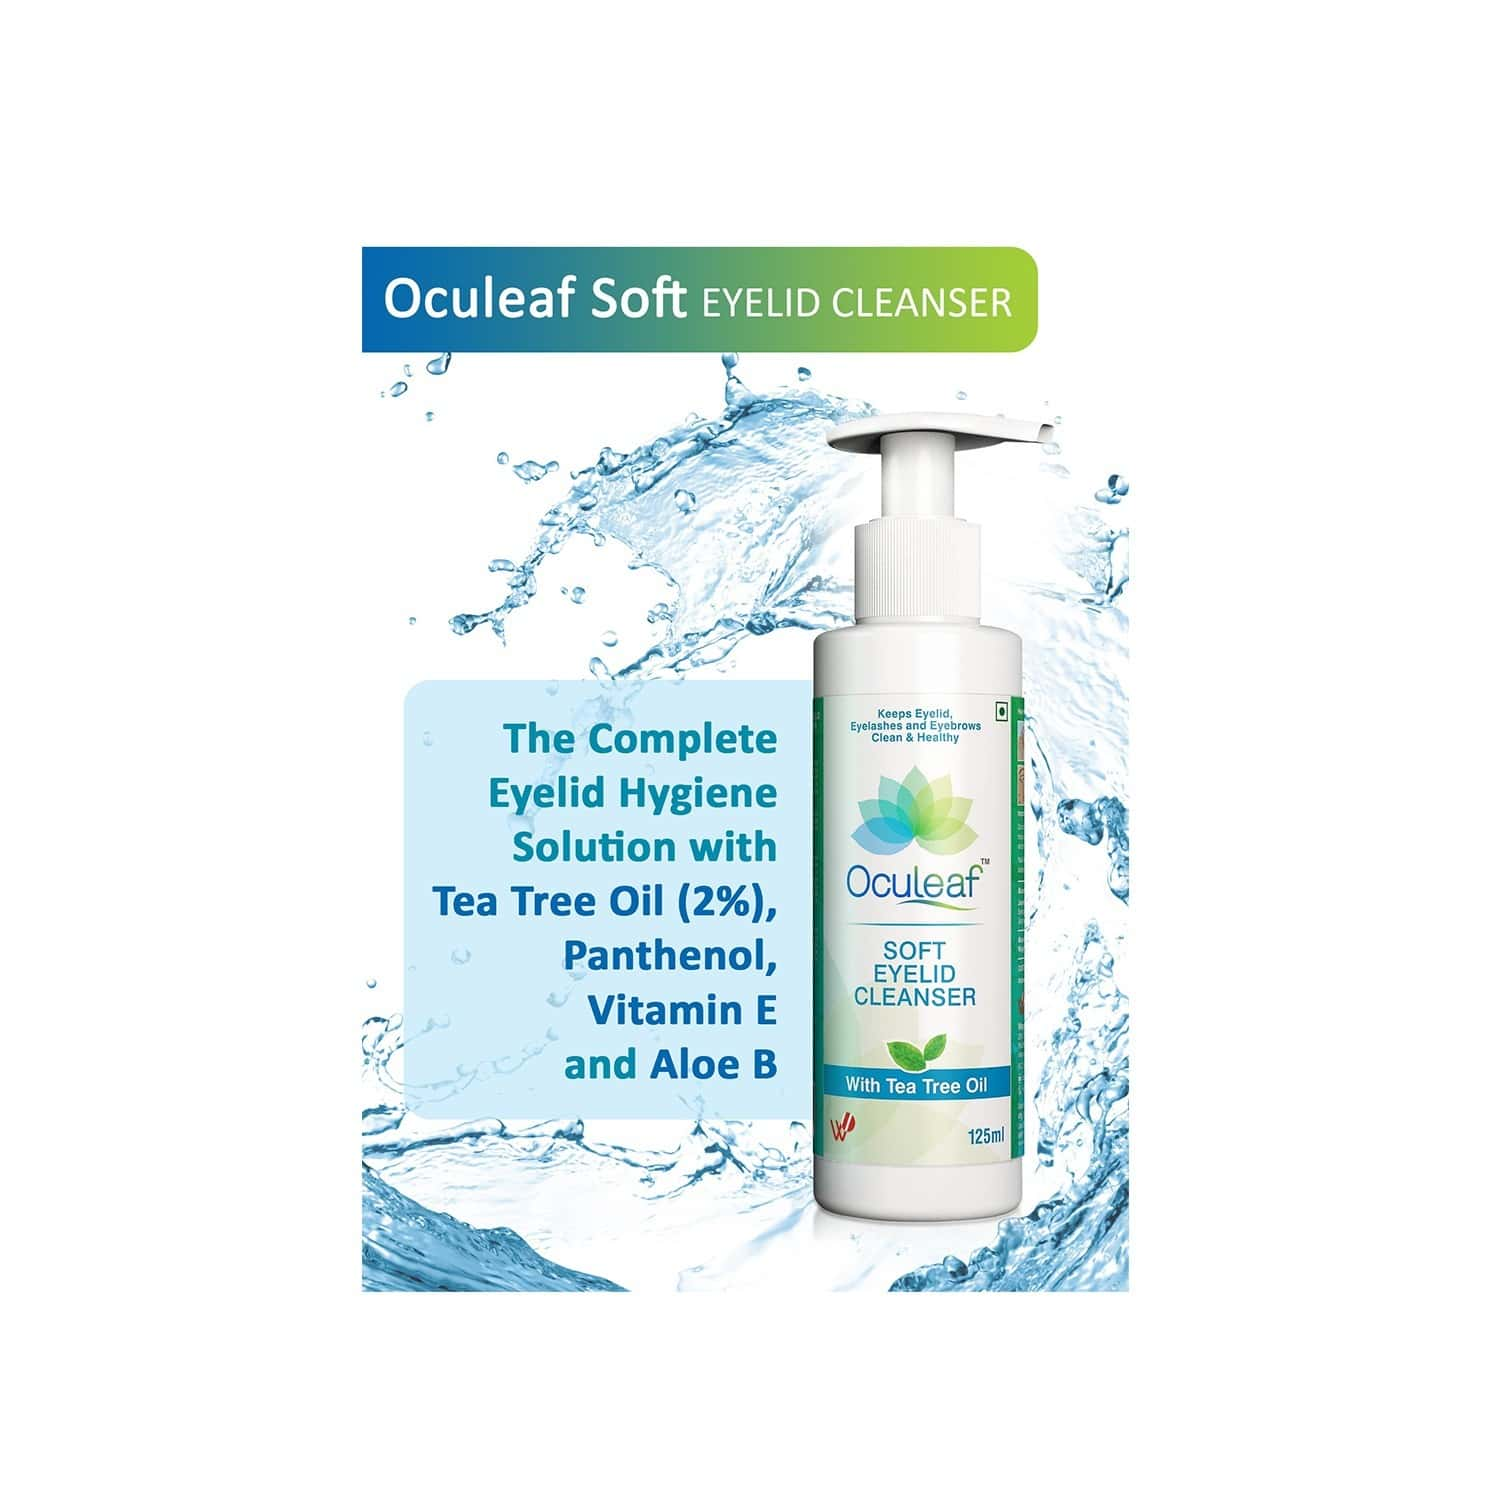 Oculeaf Soft Eyelid Cleanser Packet Of 125 Ml